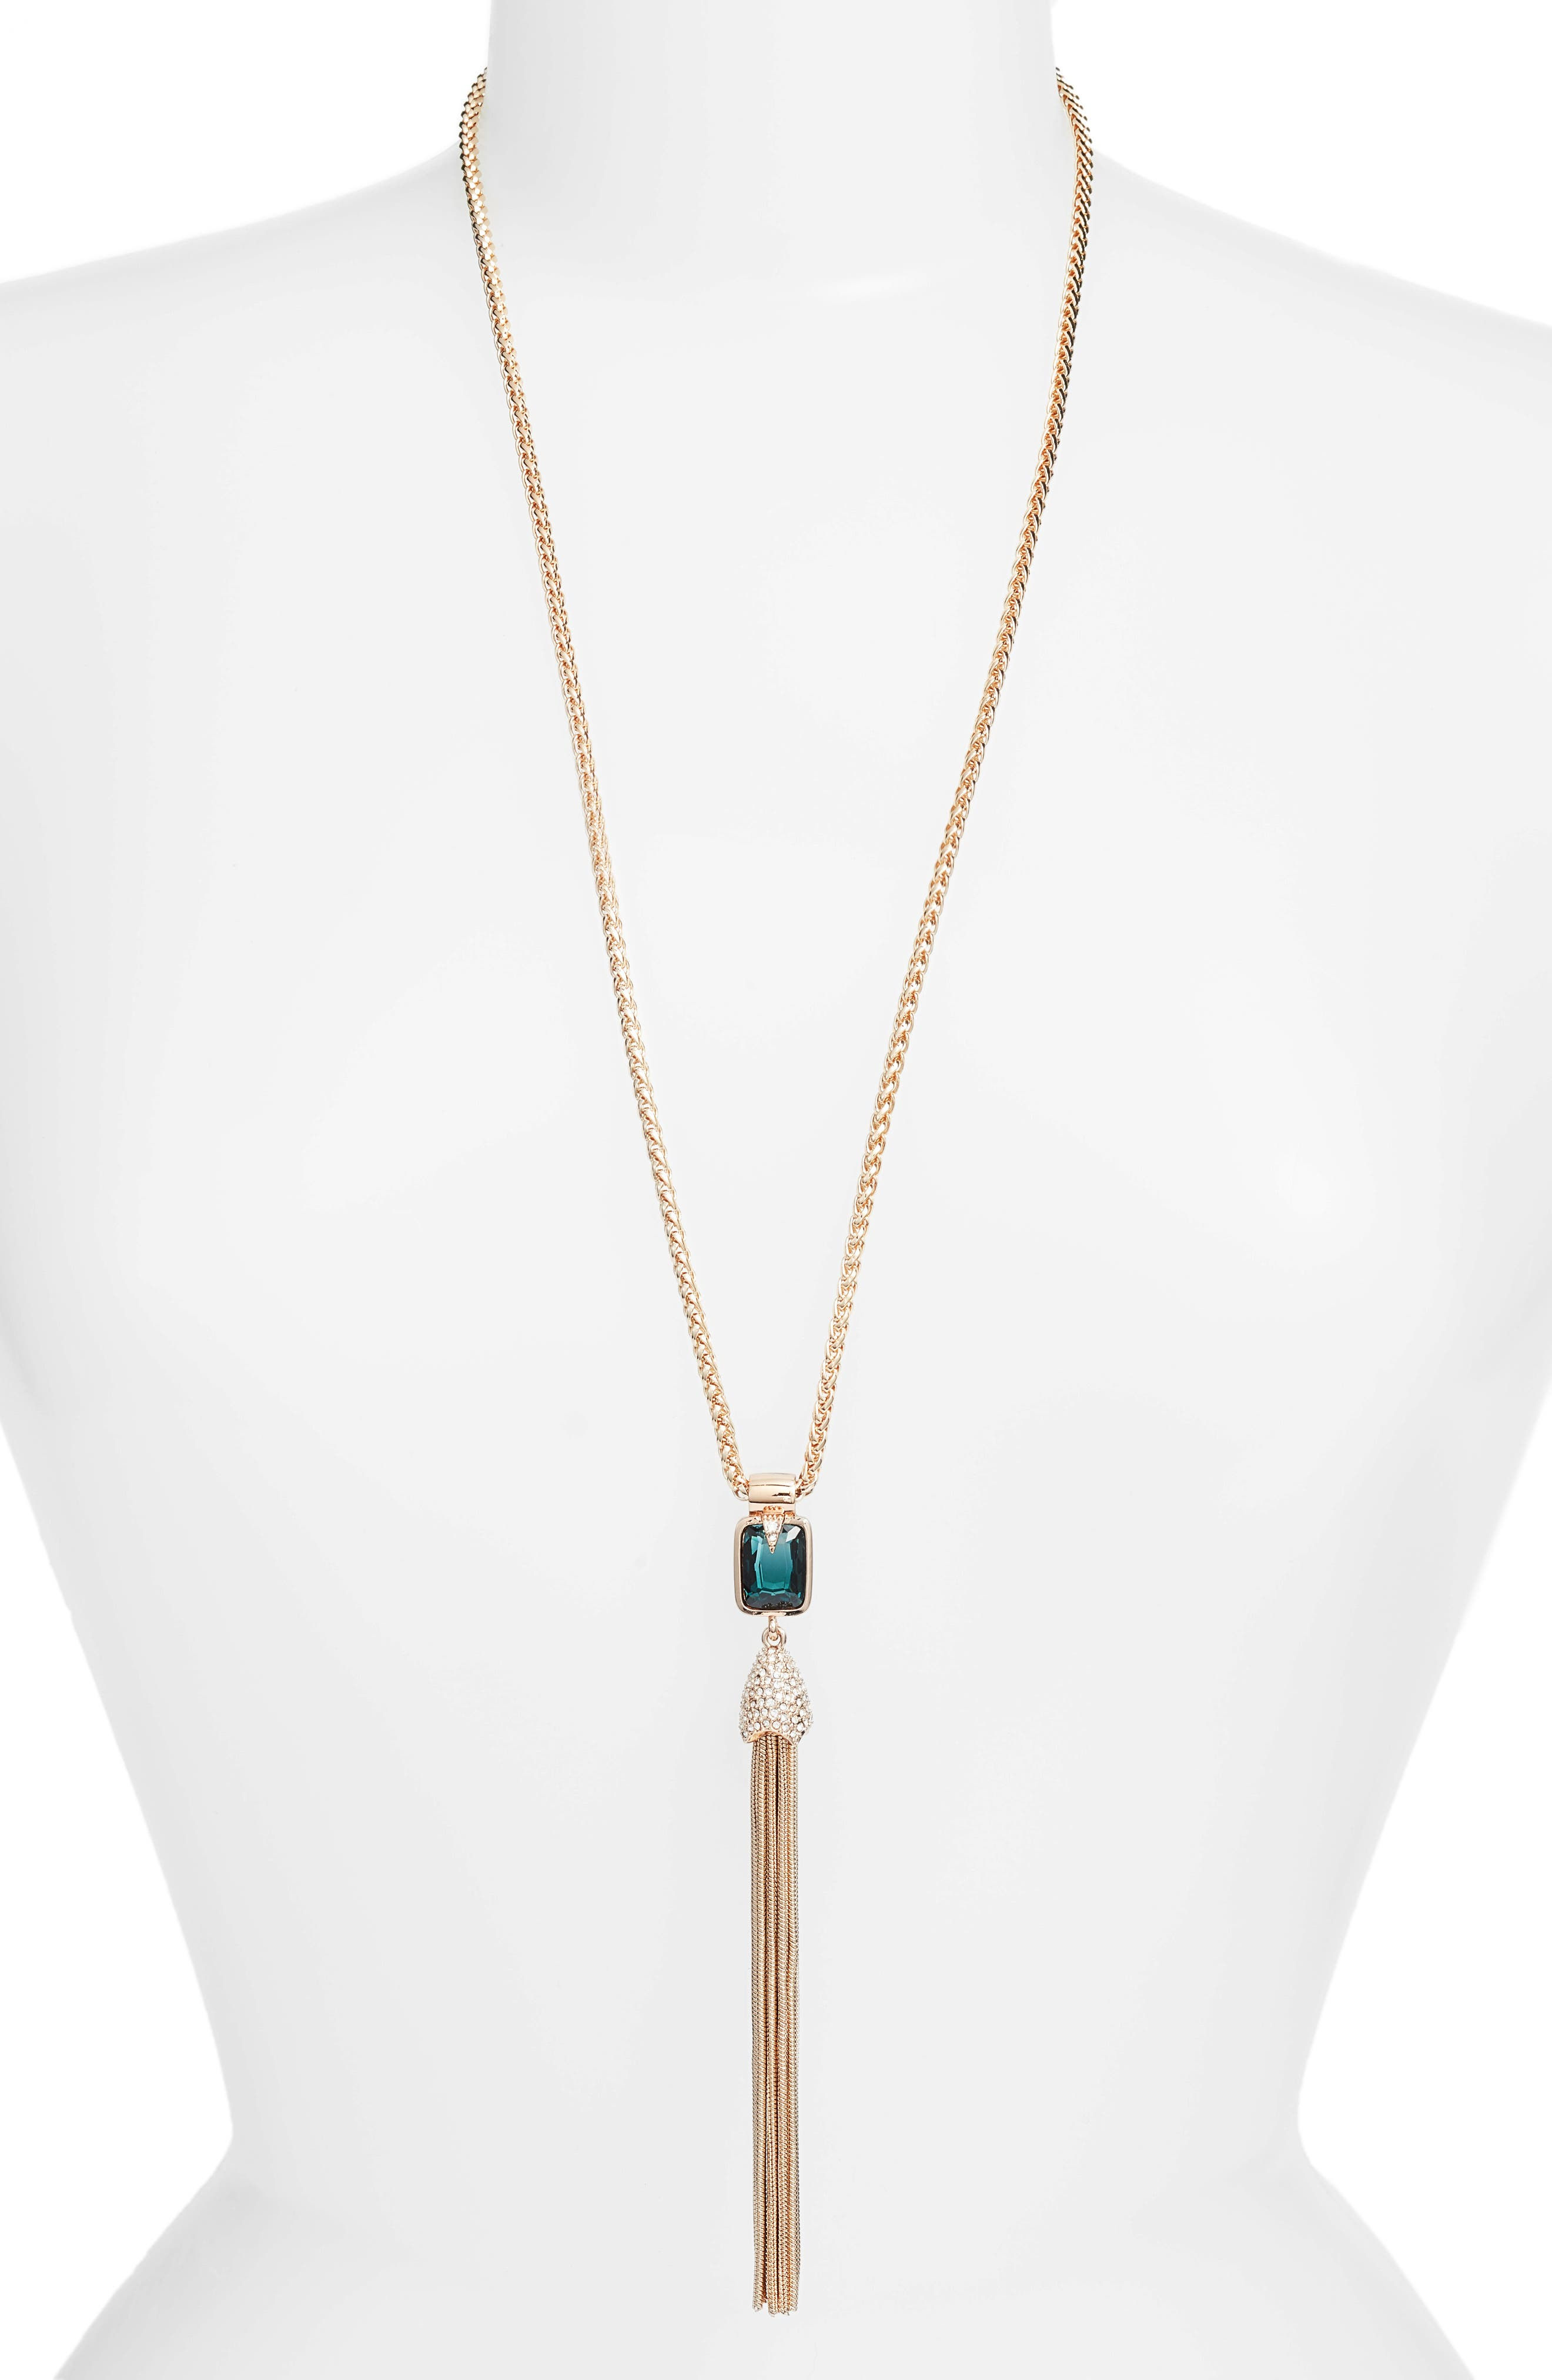 Tassel Pendant Necklace,                             Main thumbnail 1, color,                             650